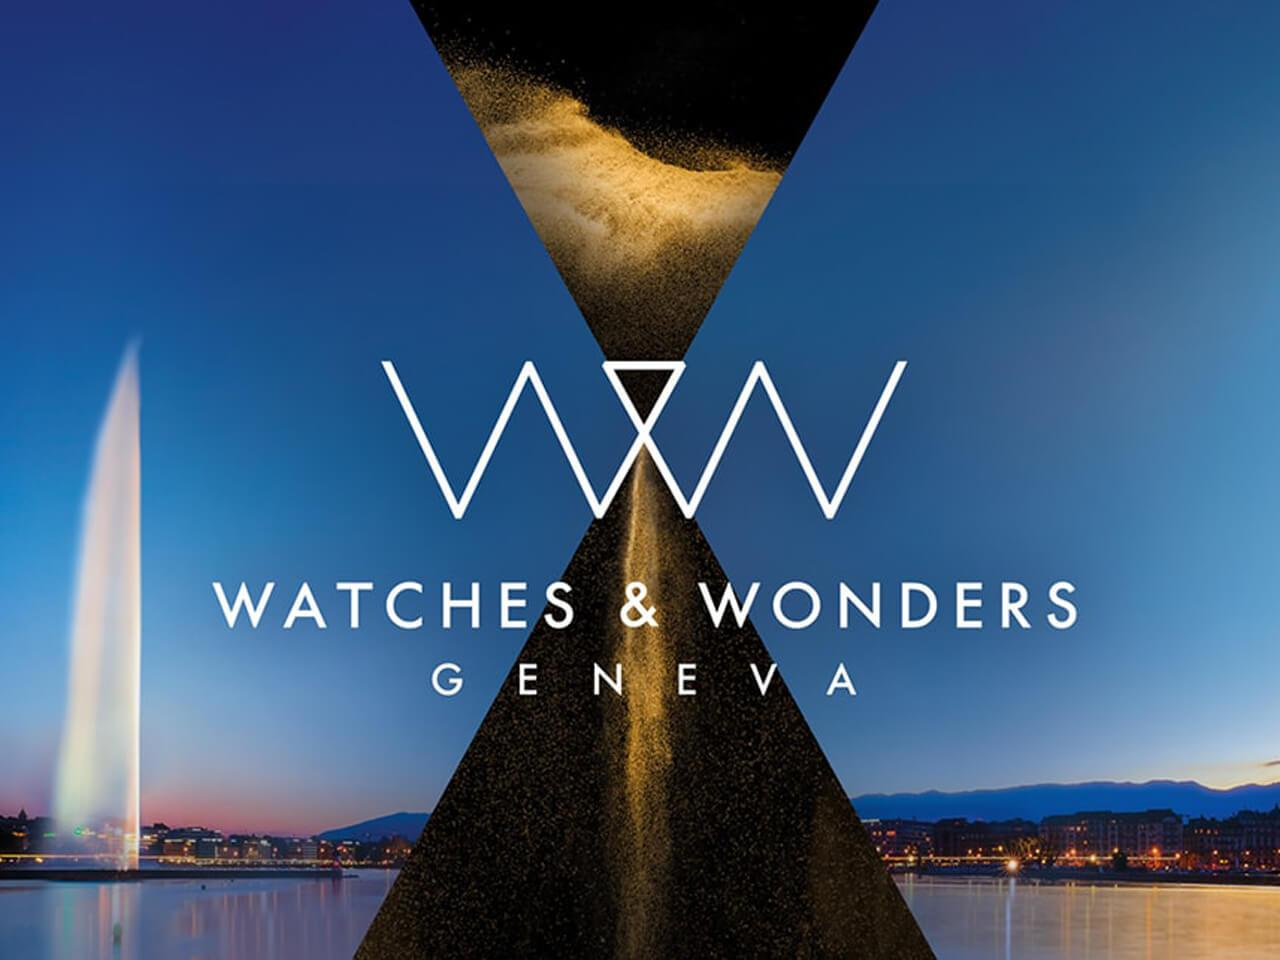 SIHH「WATCHES & WONDERS GENEVA」に名称変更!